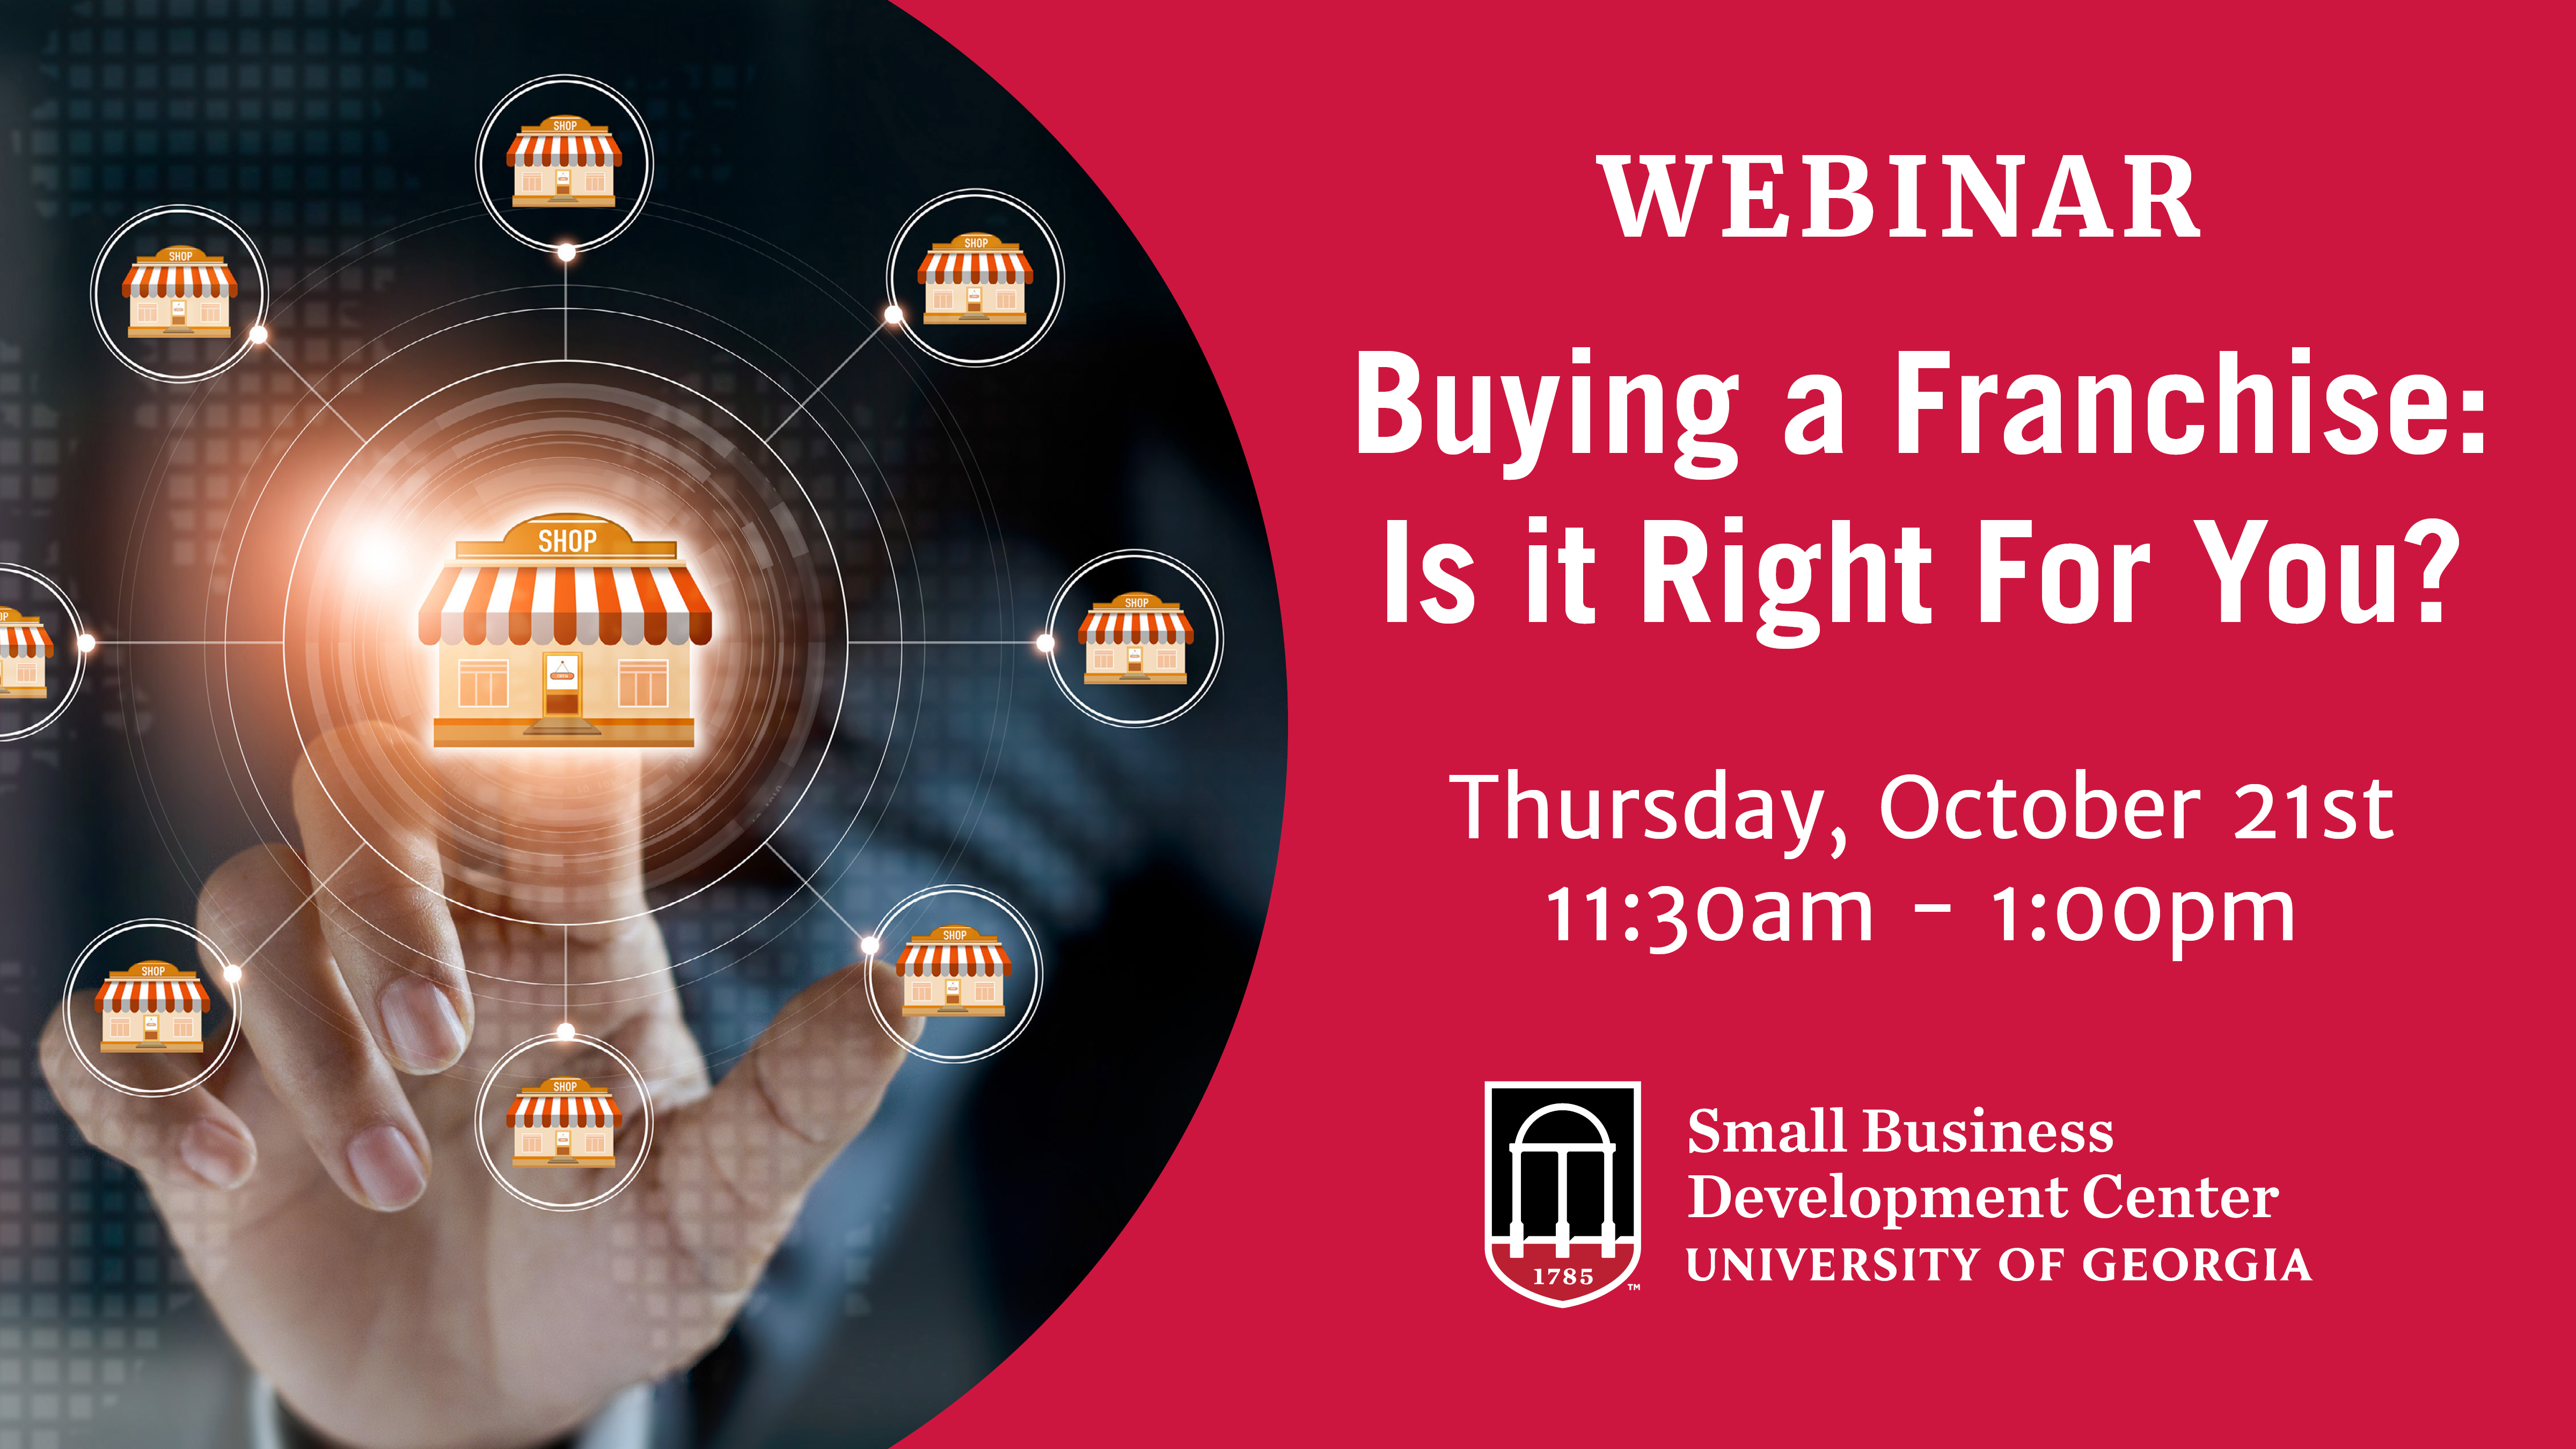 Buying a Franchise: Is it Right For You? Webinar